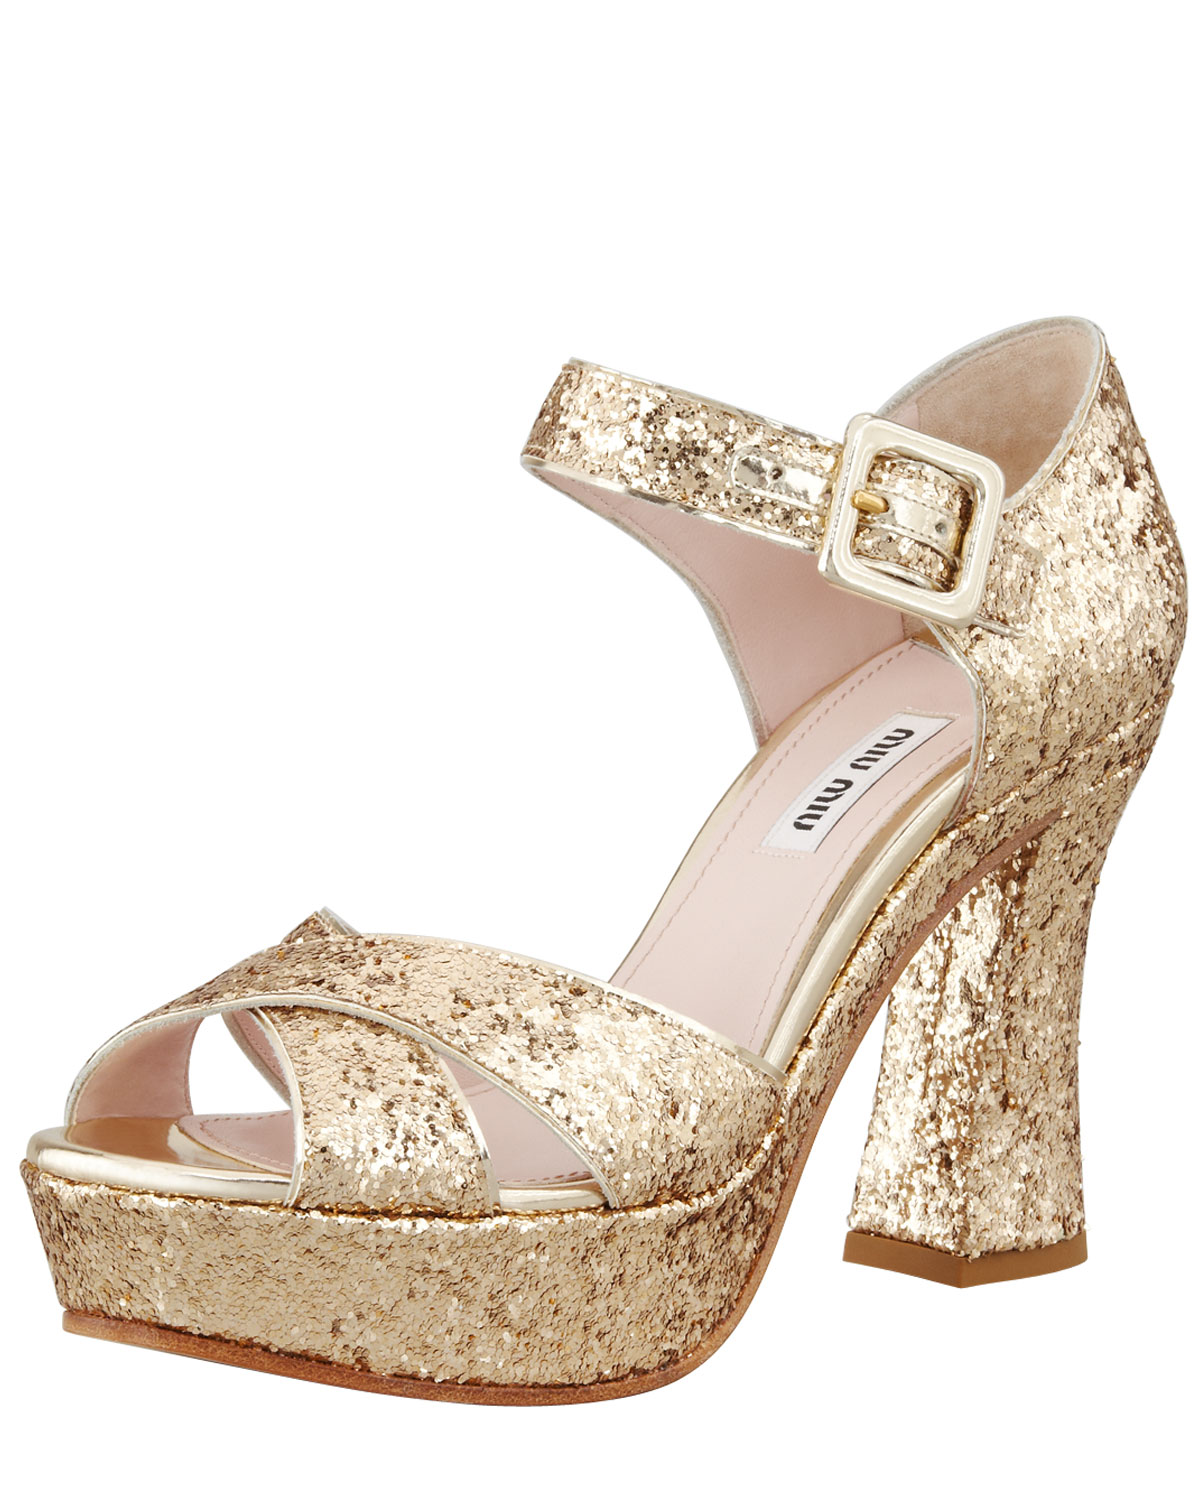 12037259358f Lyst - Miu Miu Glitter Crisscross Mary Jane Sandal in Metallic